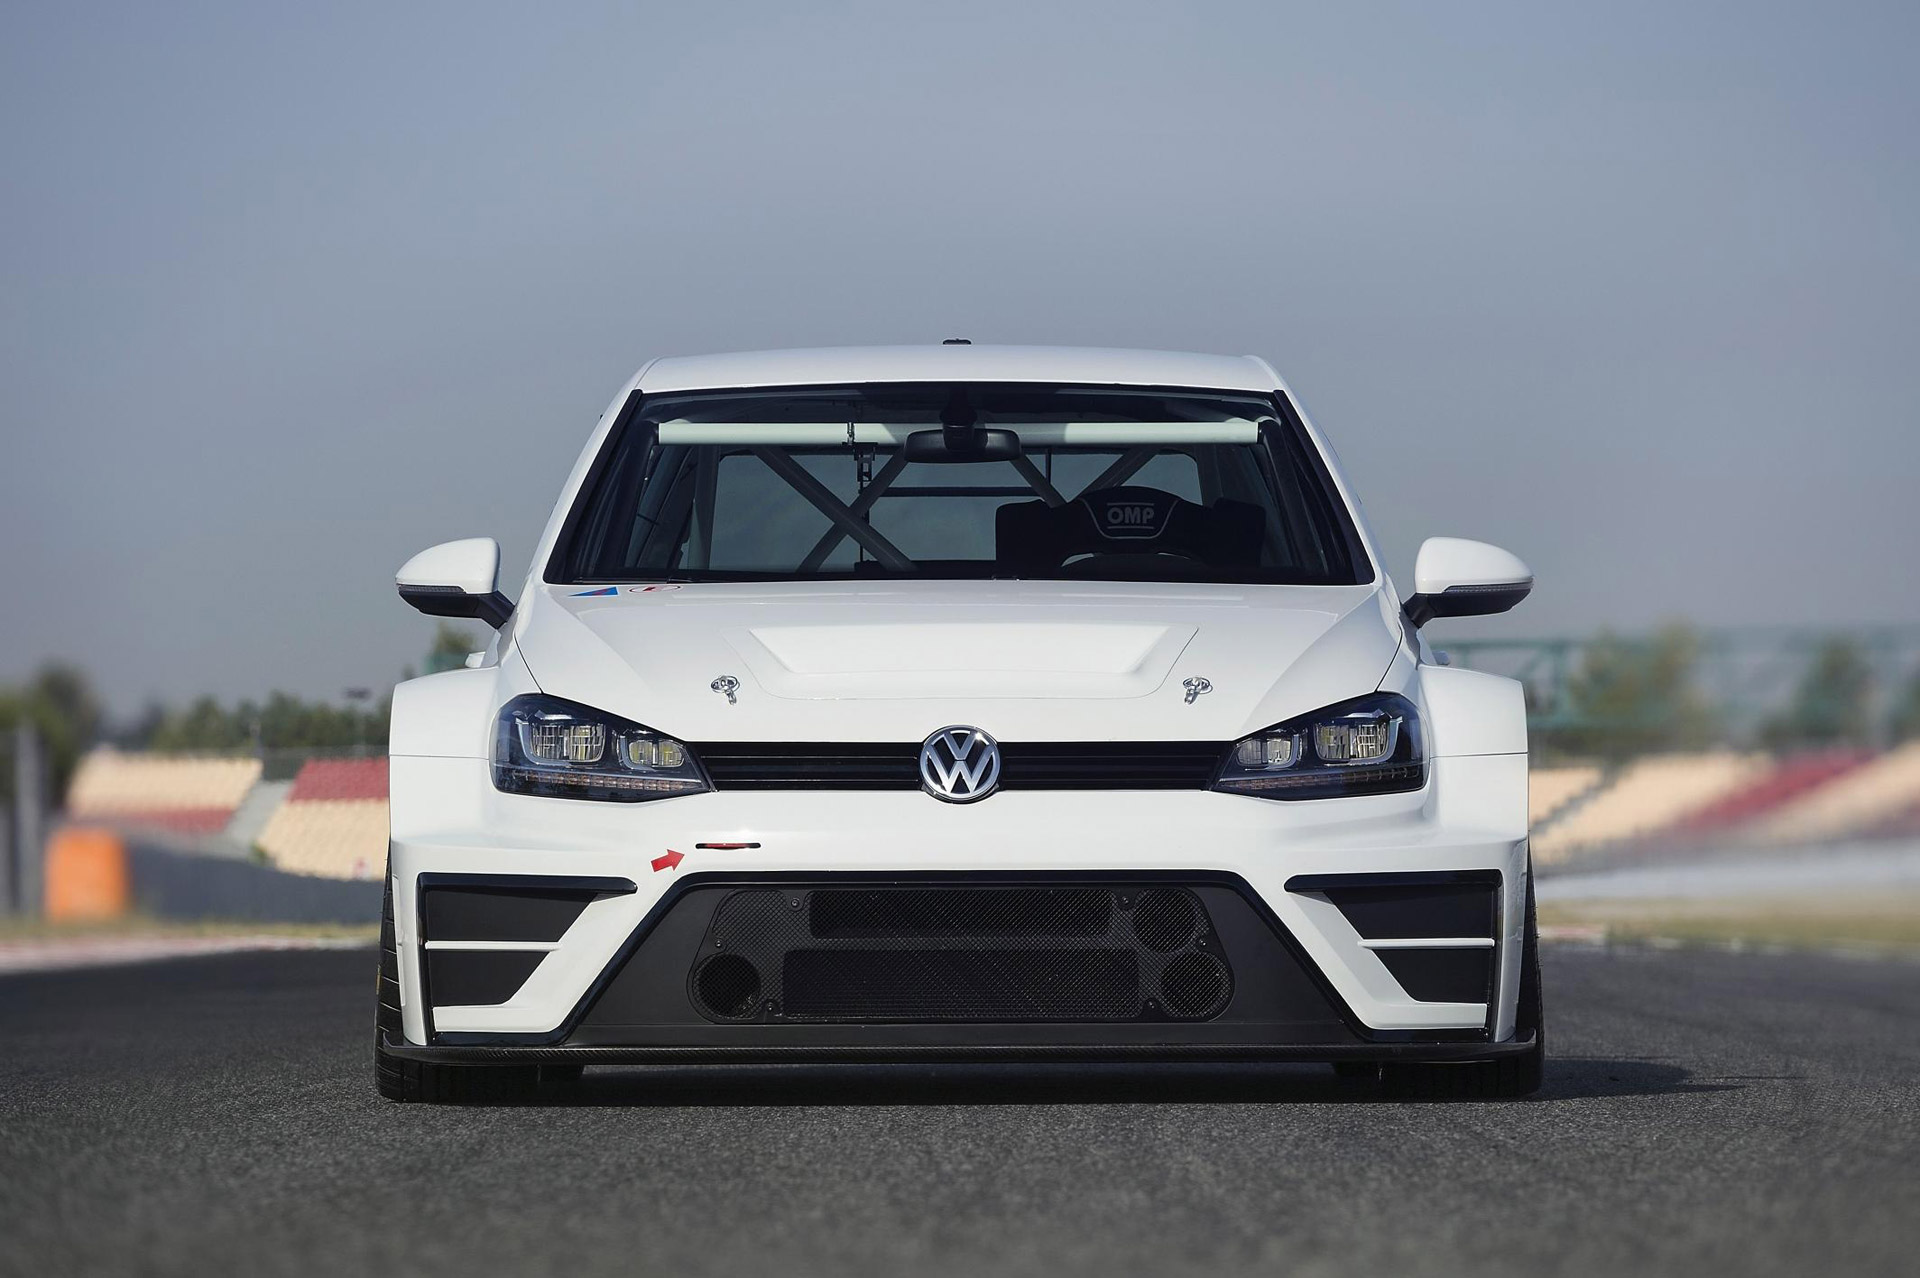 vw reveals radical golf racer for new touringcar racer. Black Bedroom Furniture Sets. Home Design Ideas